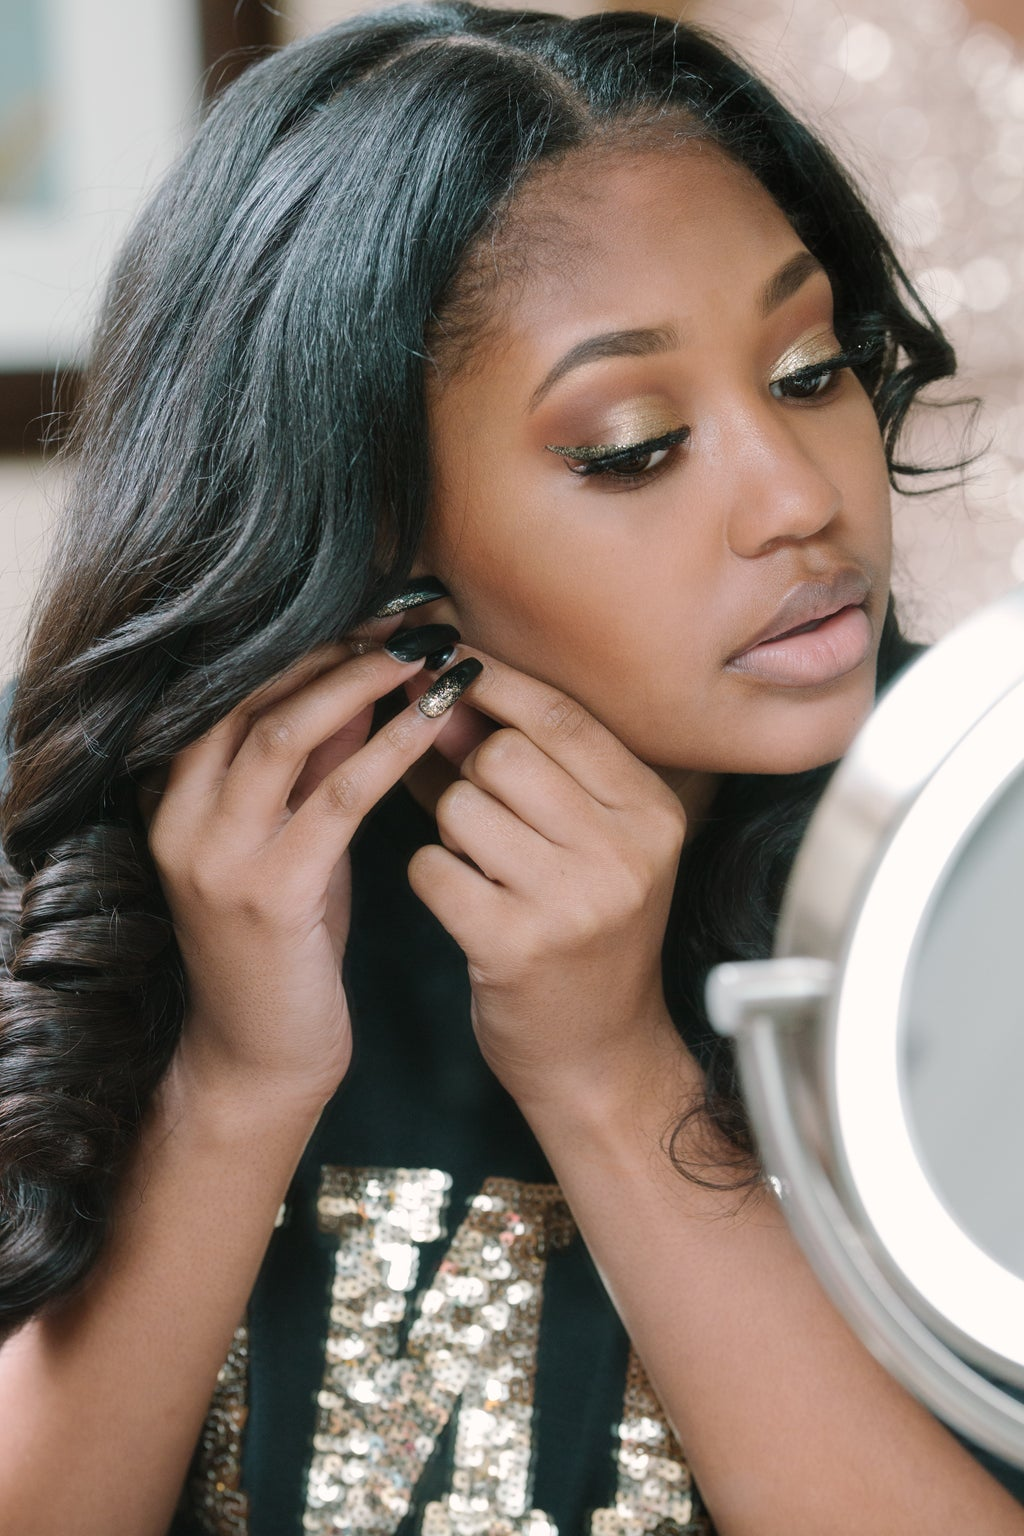 Young woman with make up on putting on her earrings.